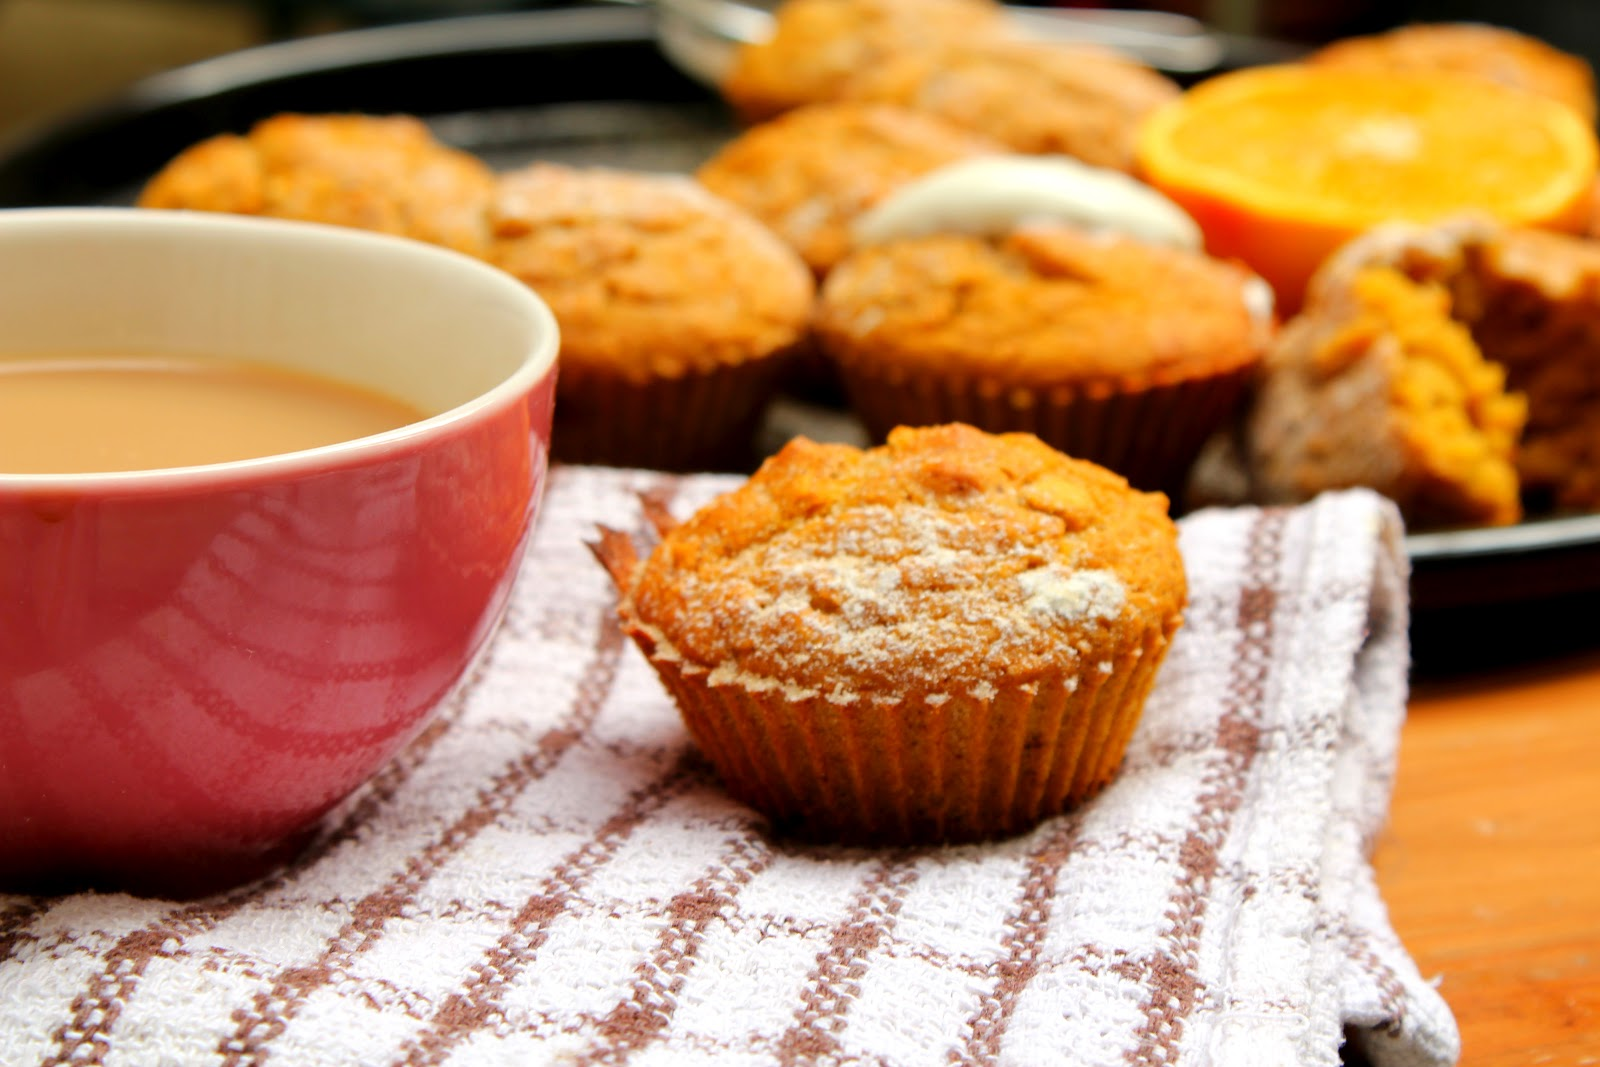 Light Perspective: Zesty Orange & Mango Breakfast Muffins